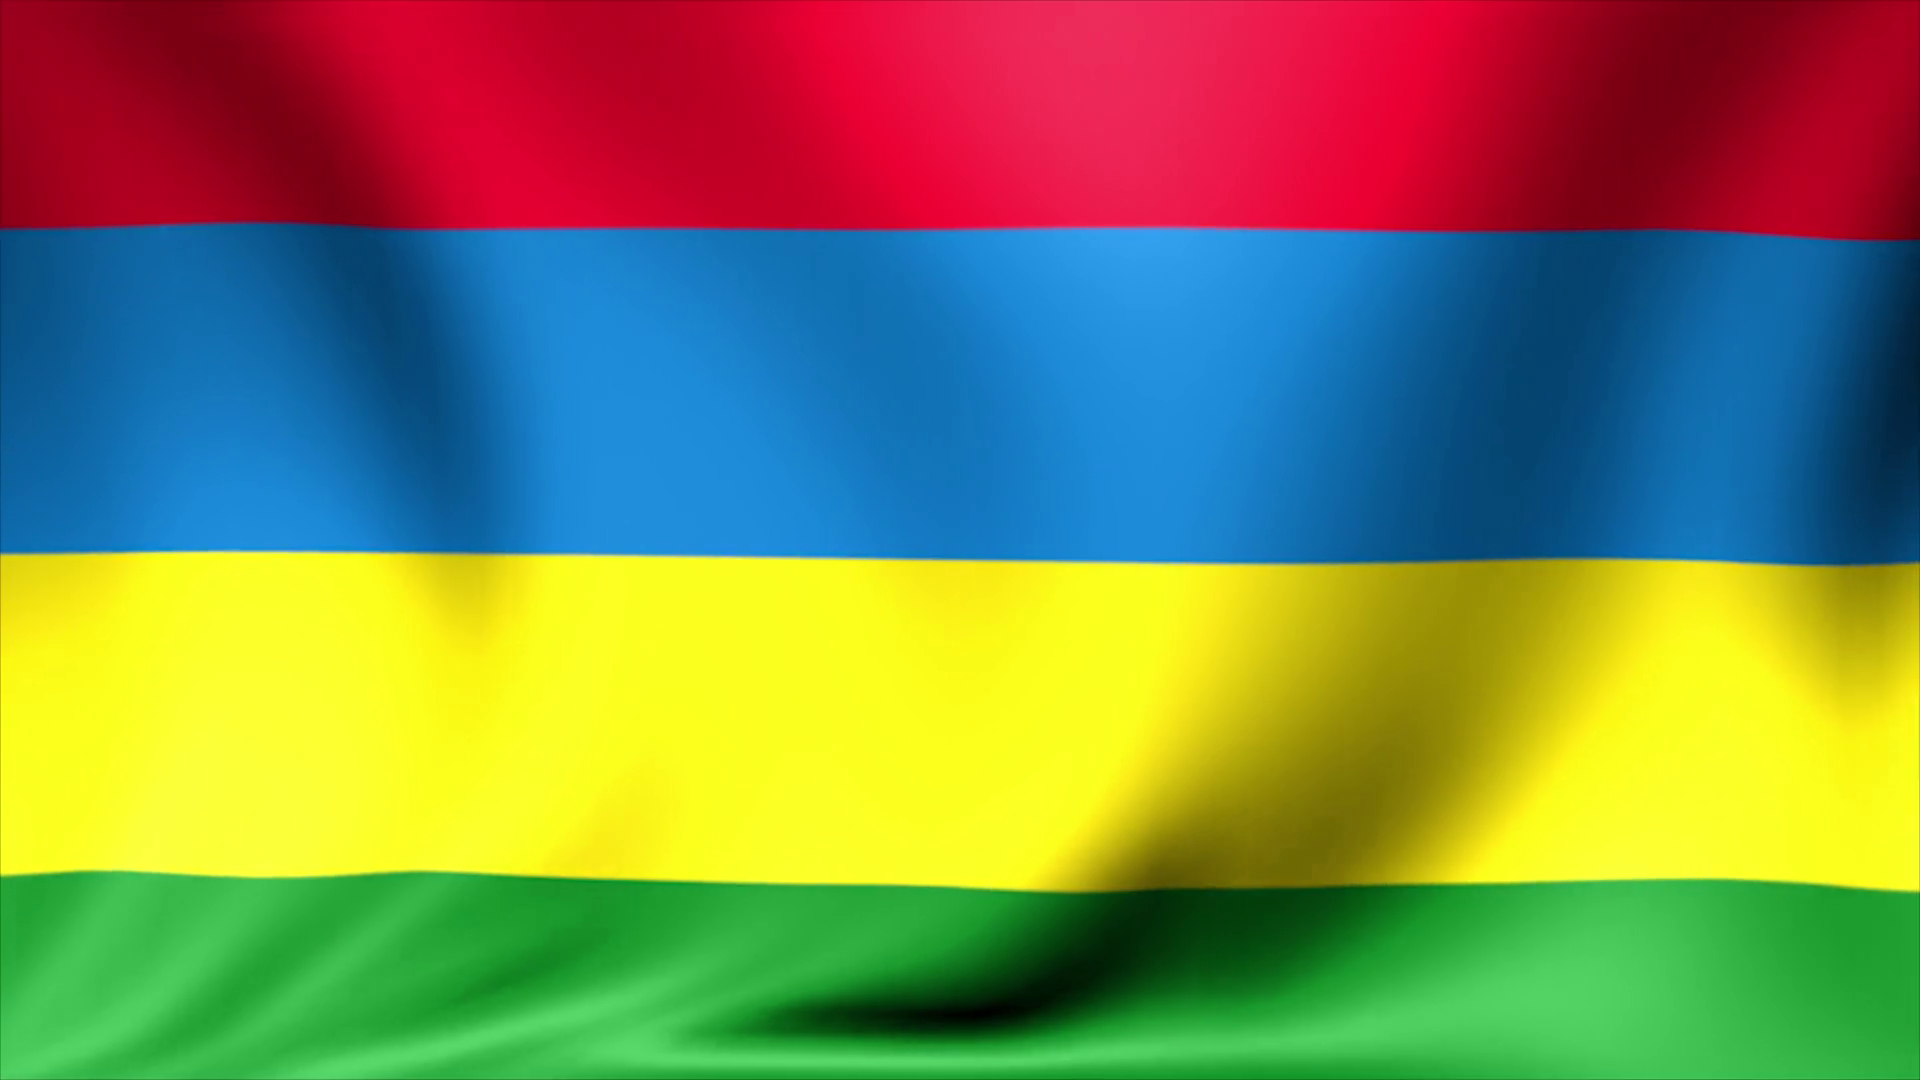 Country Mauritius